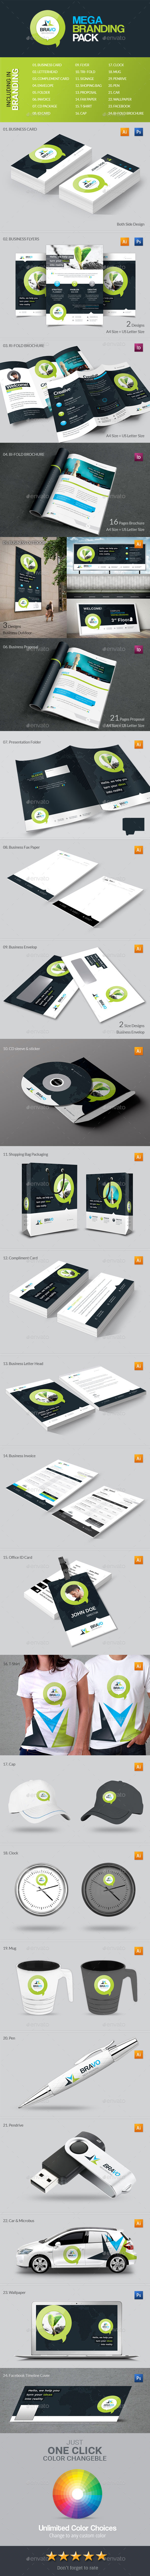 Bravo_Business Mega Branding Pack